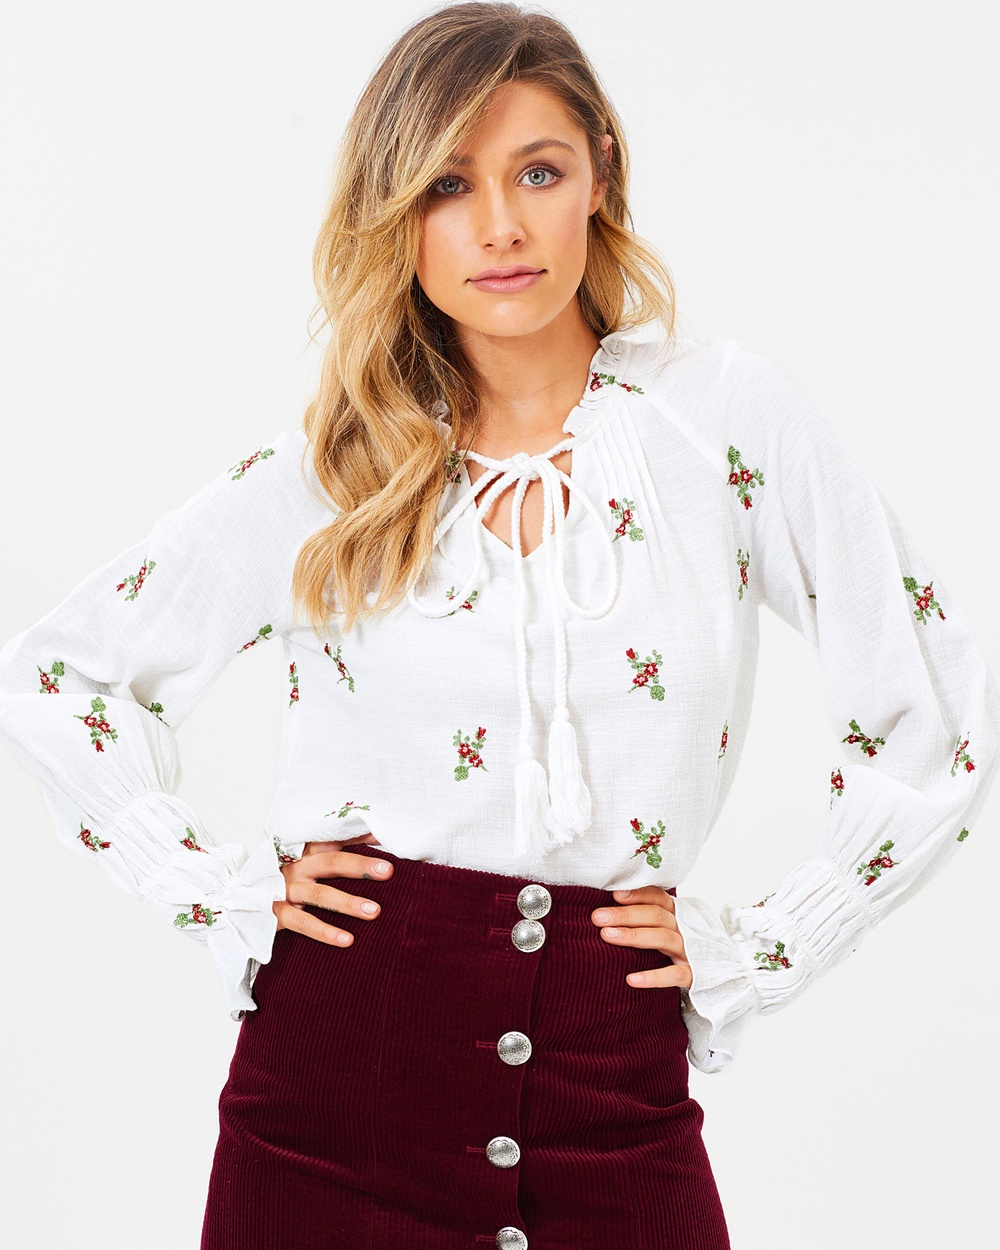 Wilde Willow Aurora Top Tops White & Embroidery Flower Aurora Top